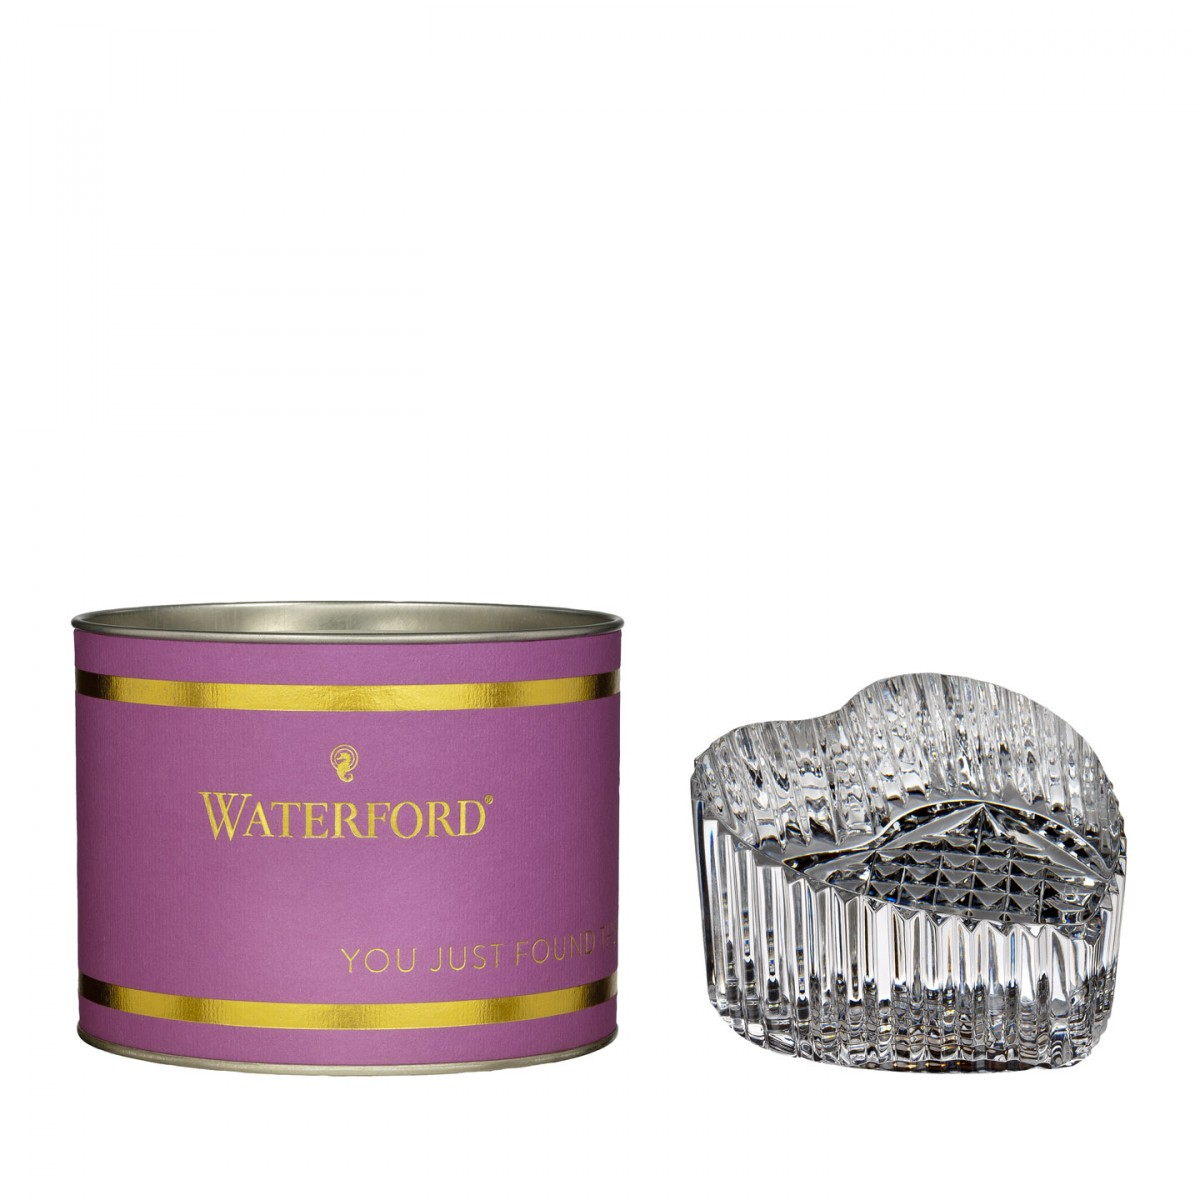 Splendiferous Waterford Ring Holder | Gorgeous Waterford Ring Holder Jewelry